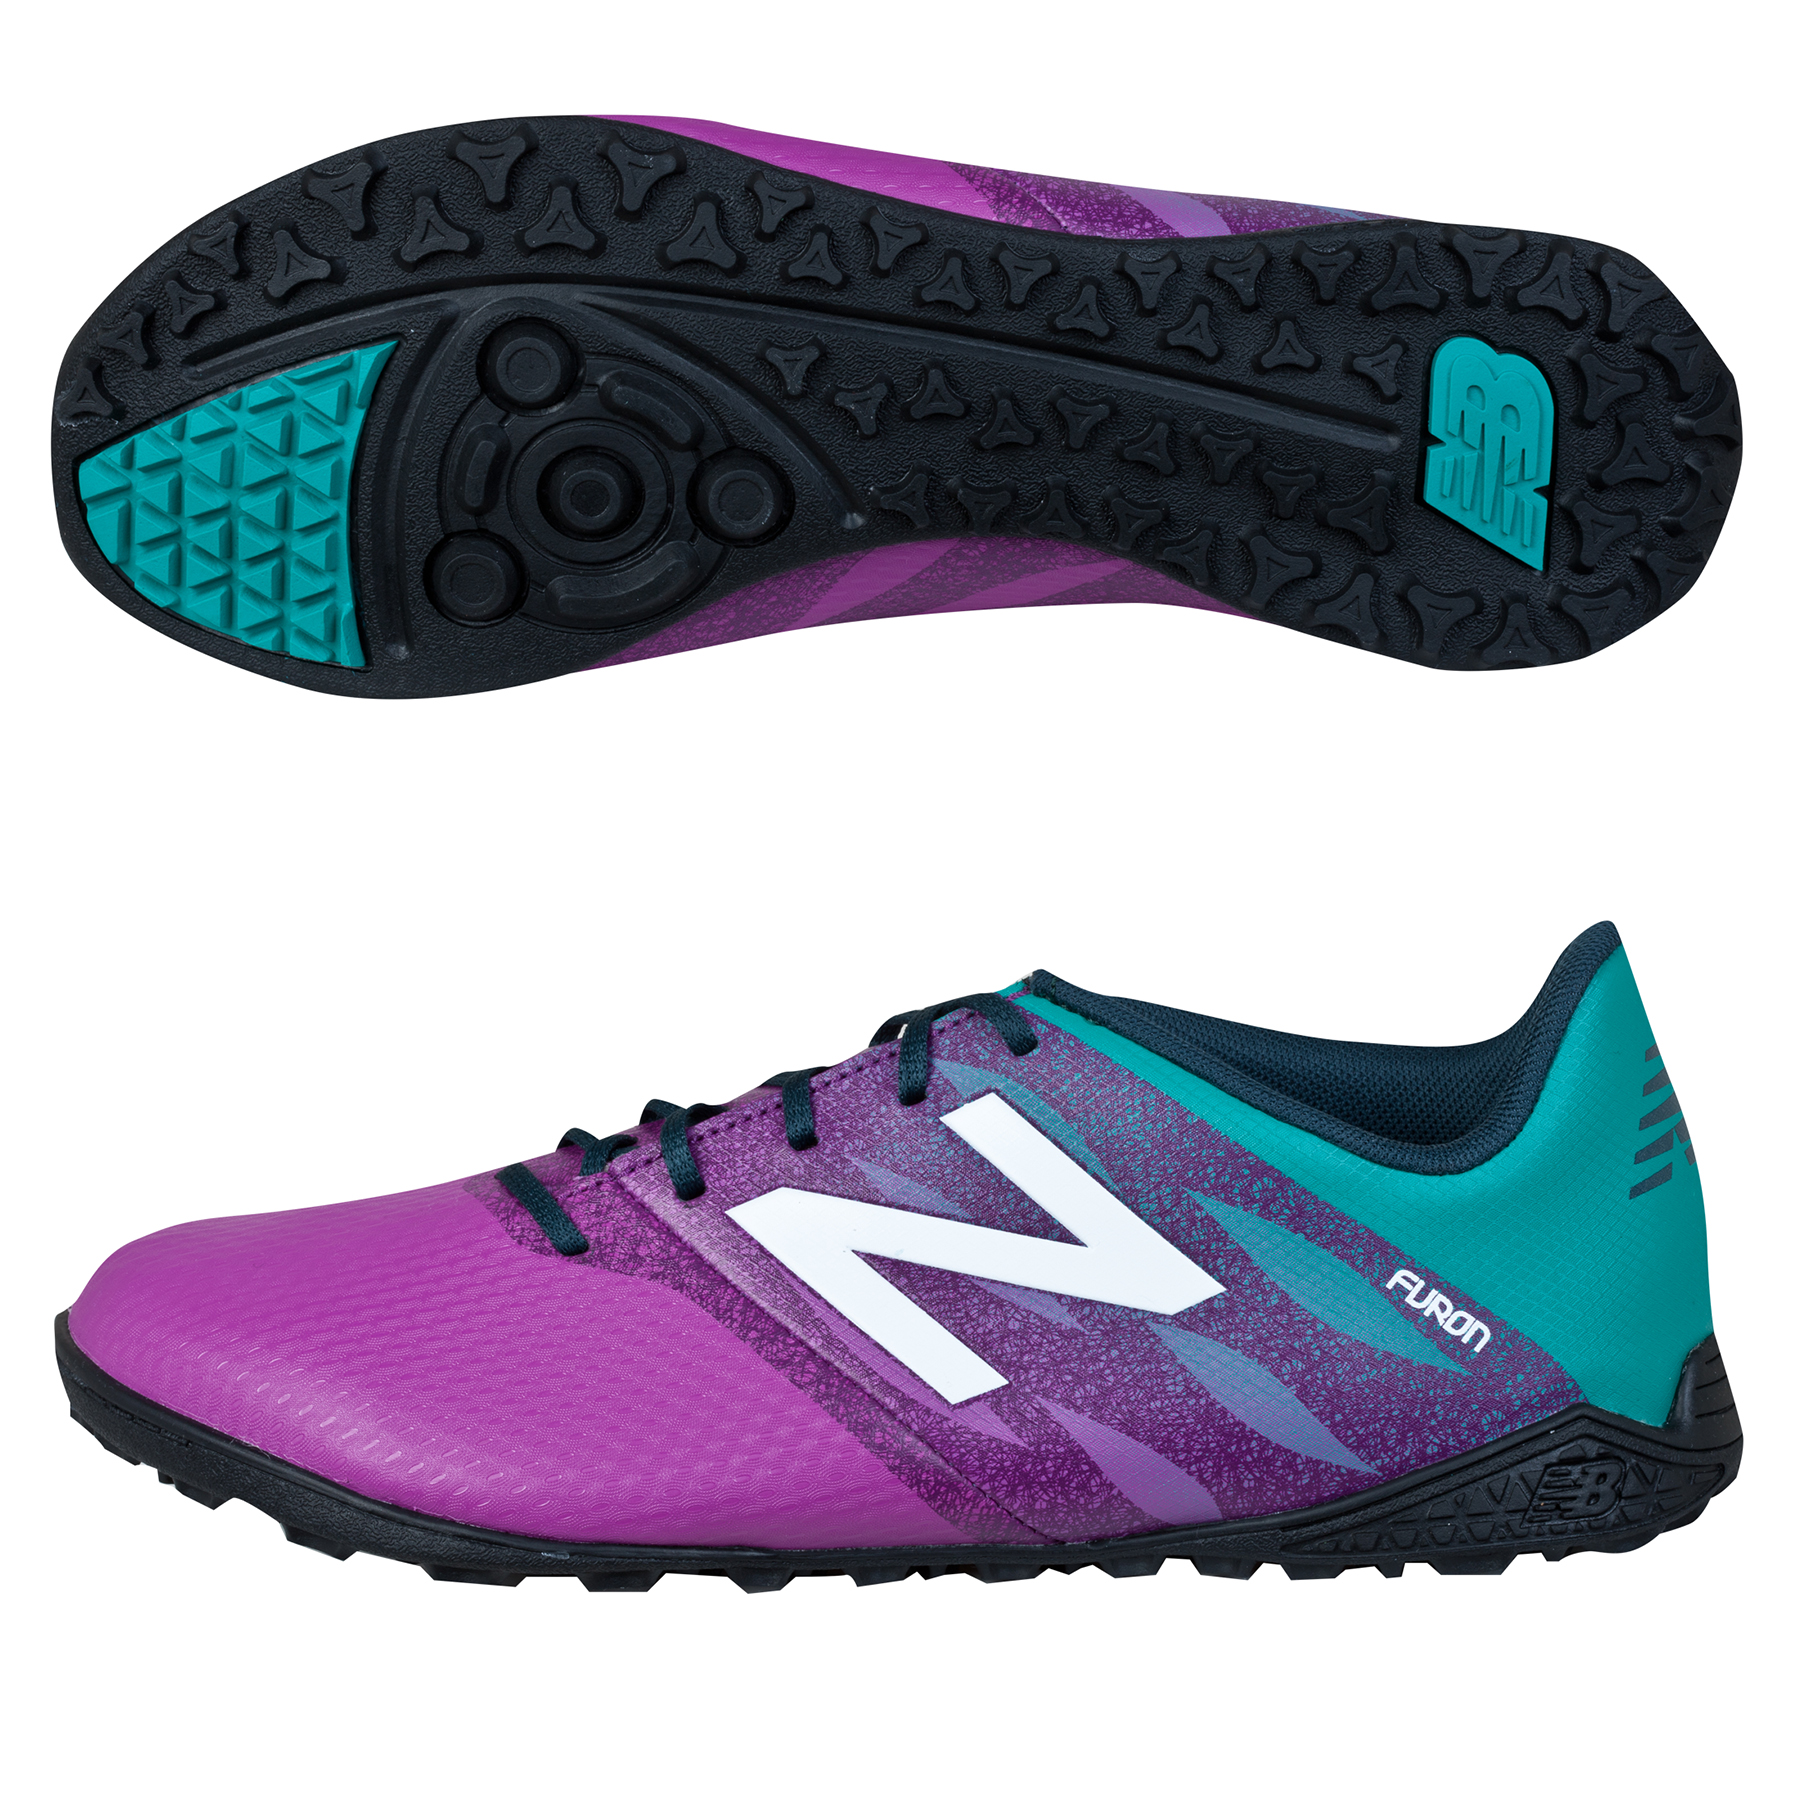 New Balance Furon Dispatch Astroturf Trainers Purple